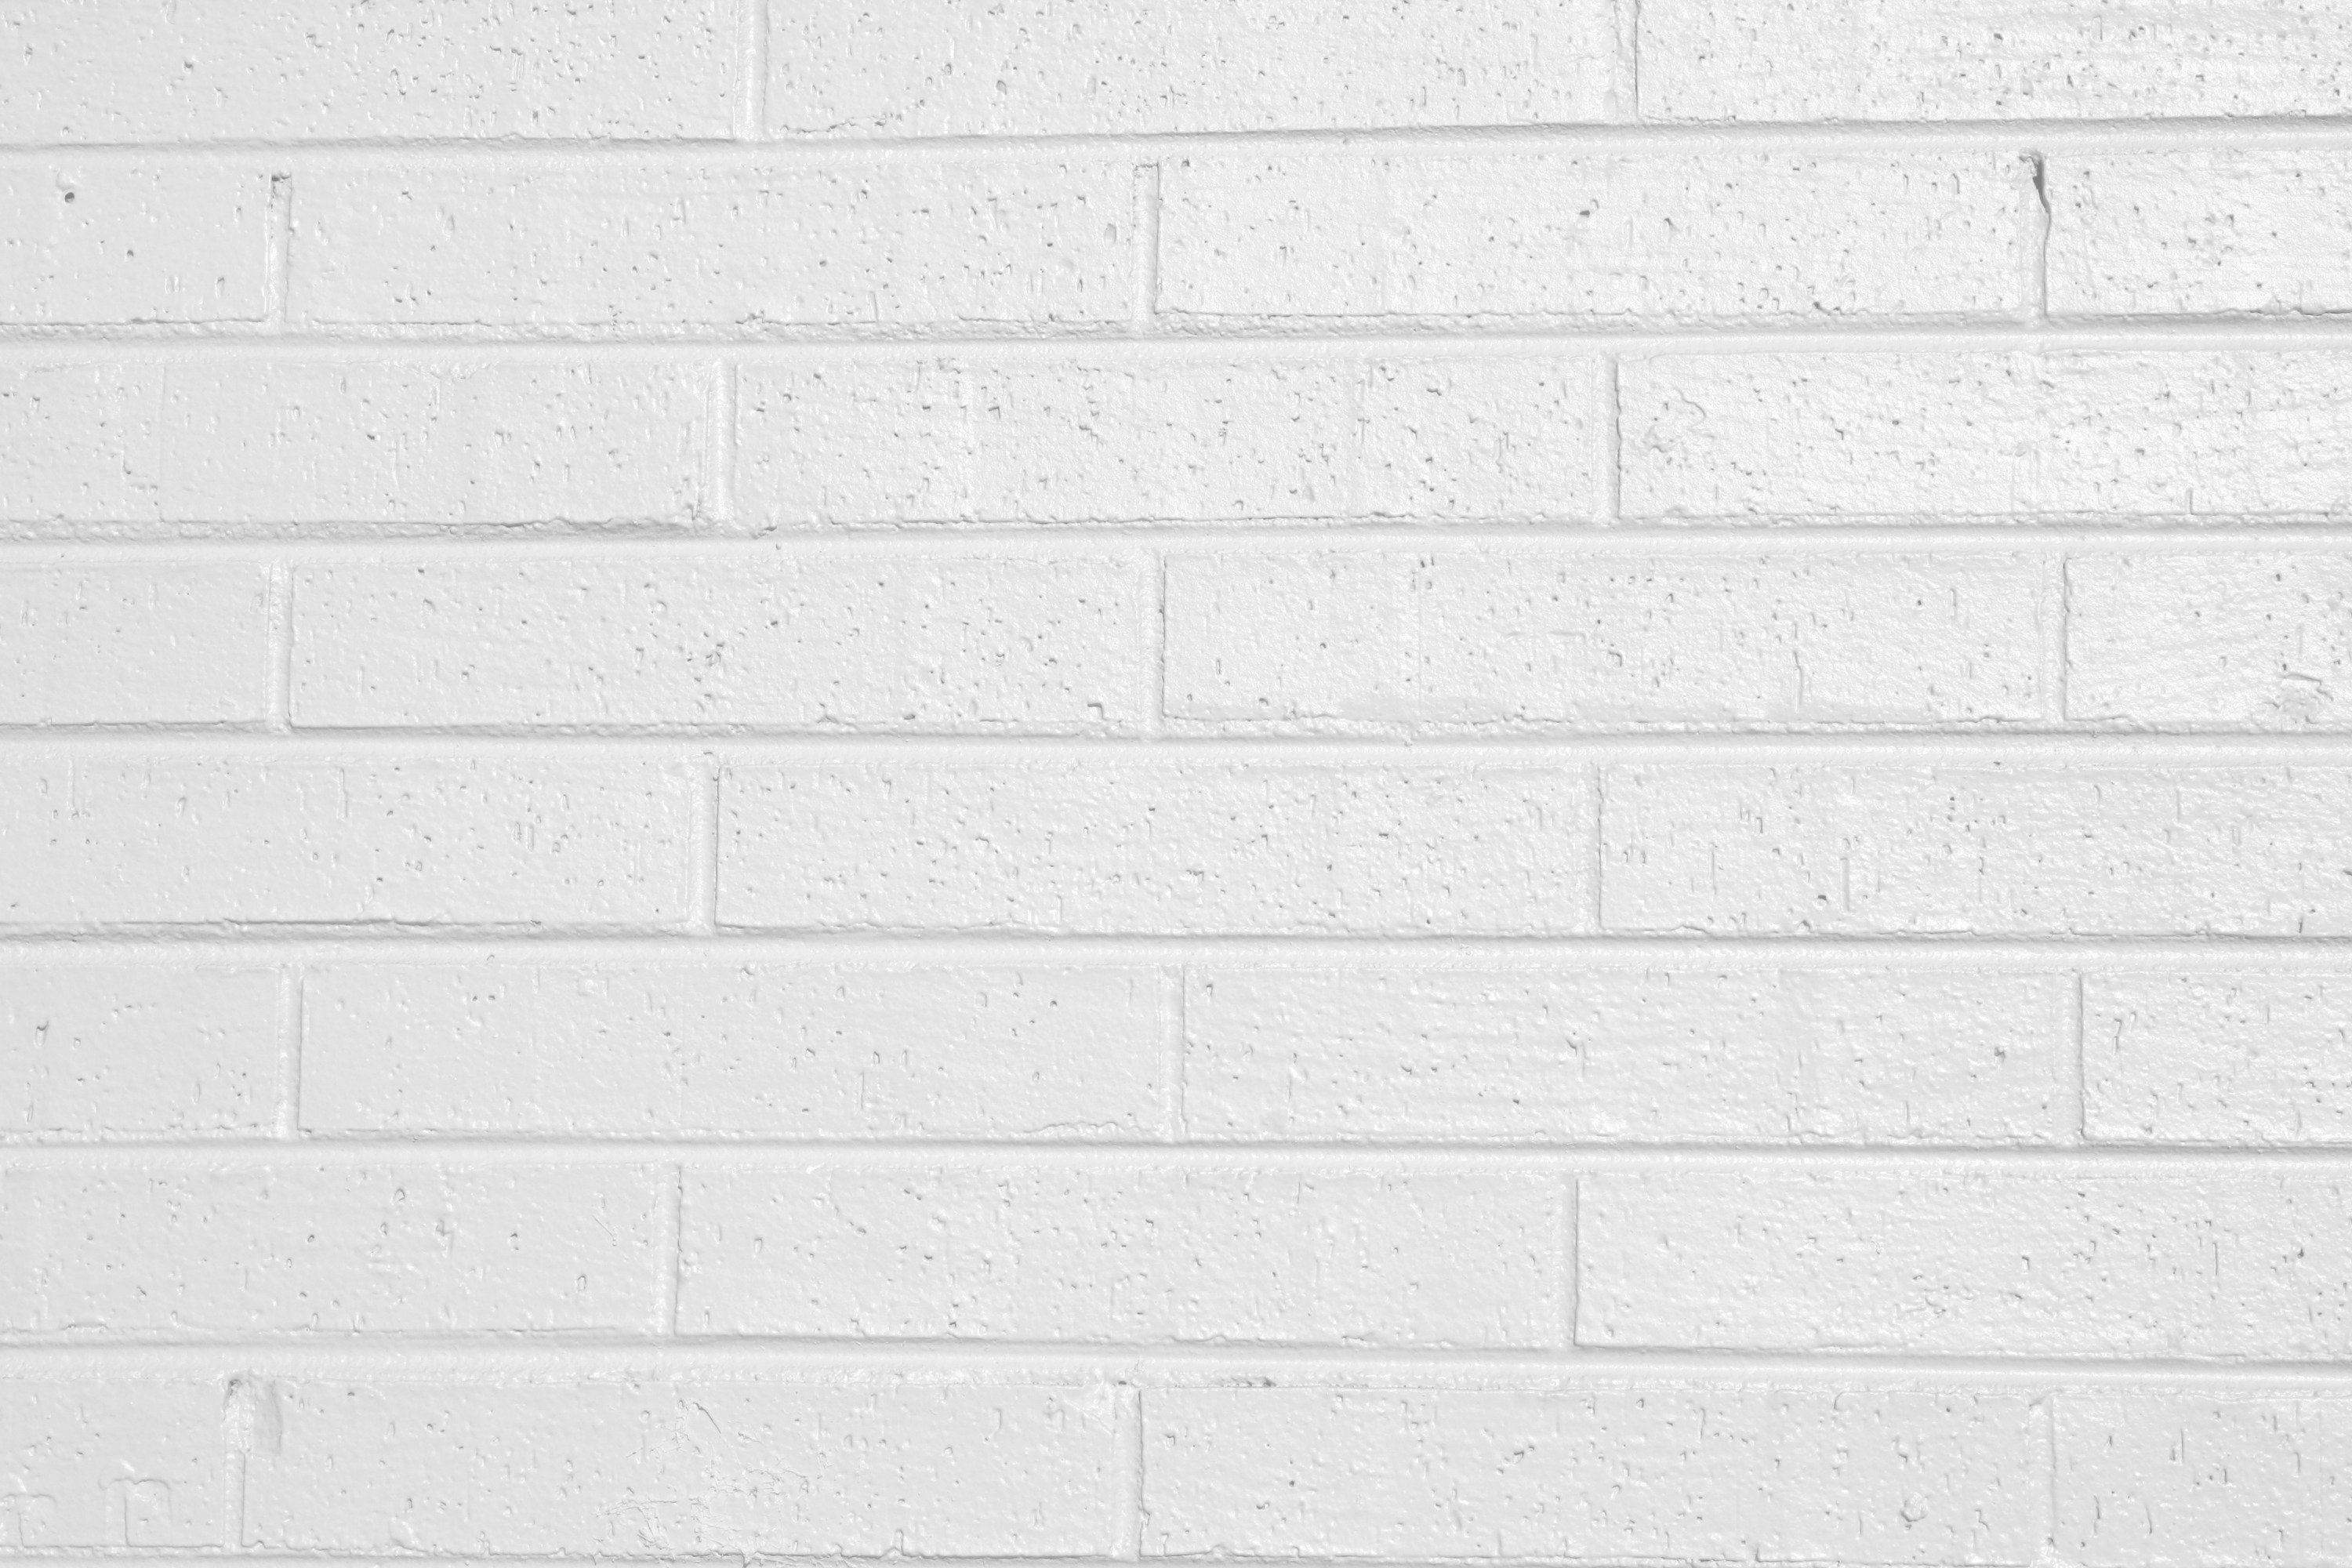 White Brick Wallpaper 2017 Grasscloth 3000x2000